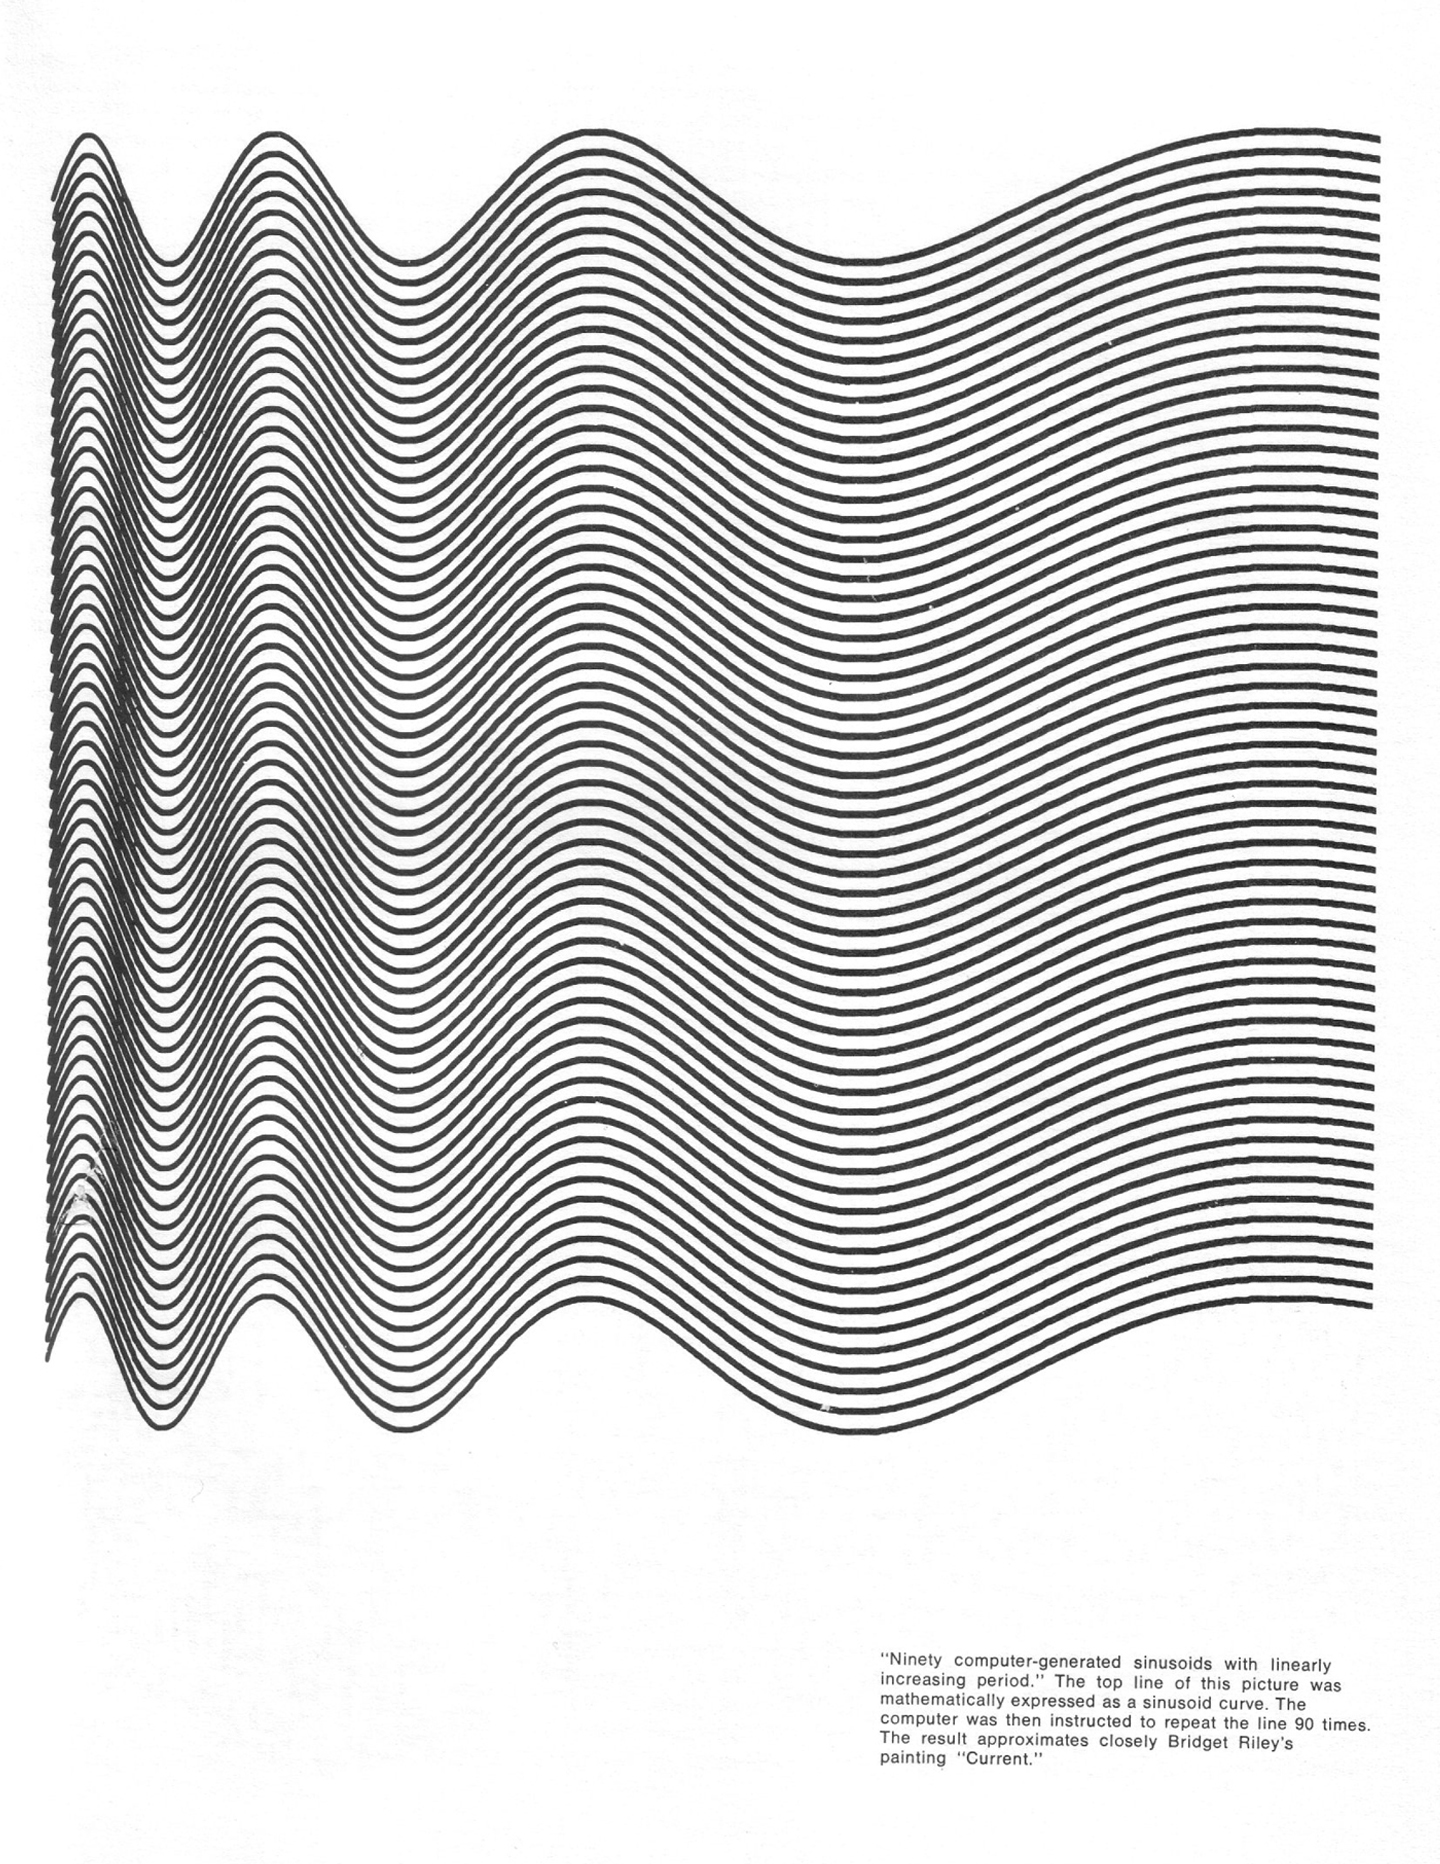 _ok_07 a-michael-noll_ninety-computer-generated-sinusoids_1965